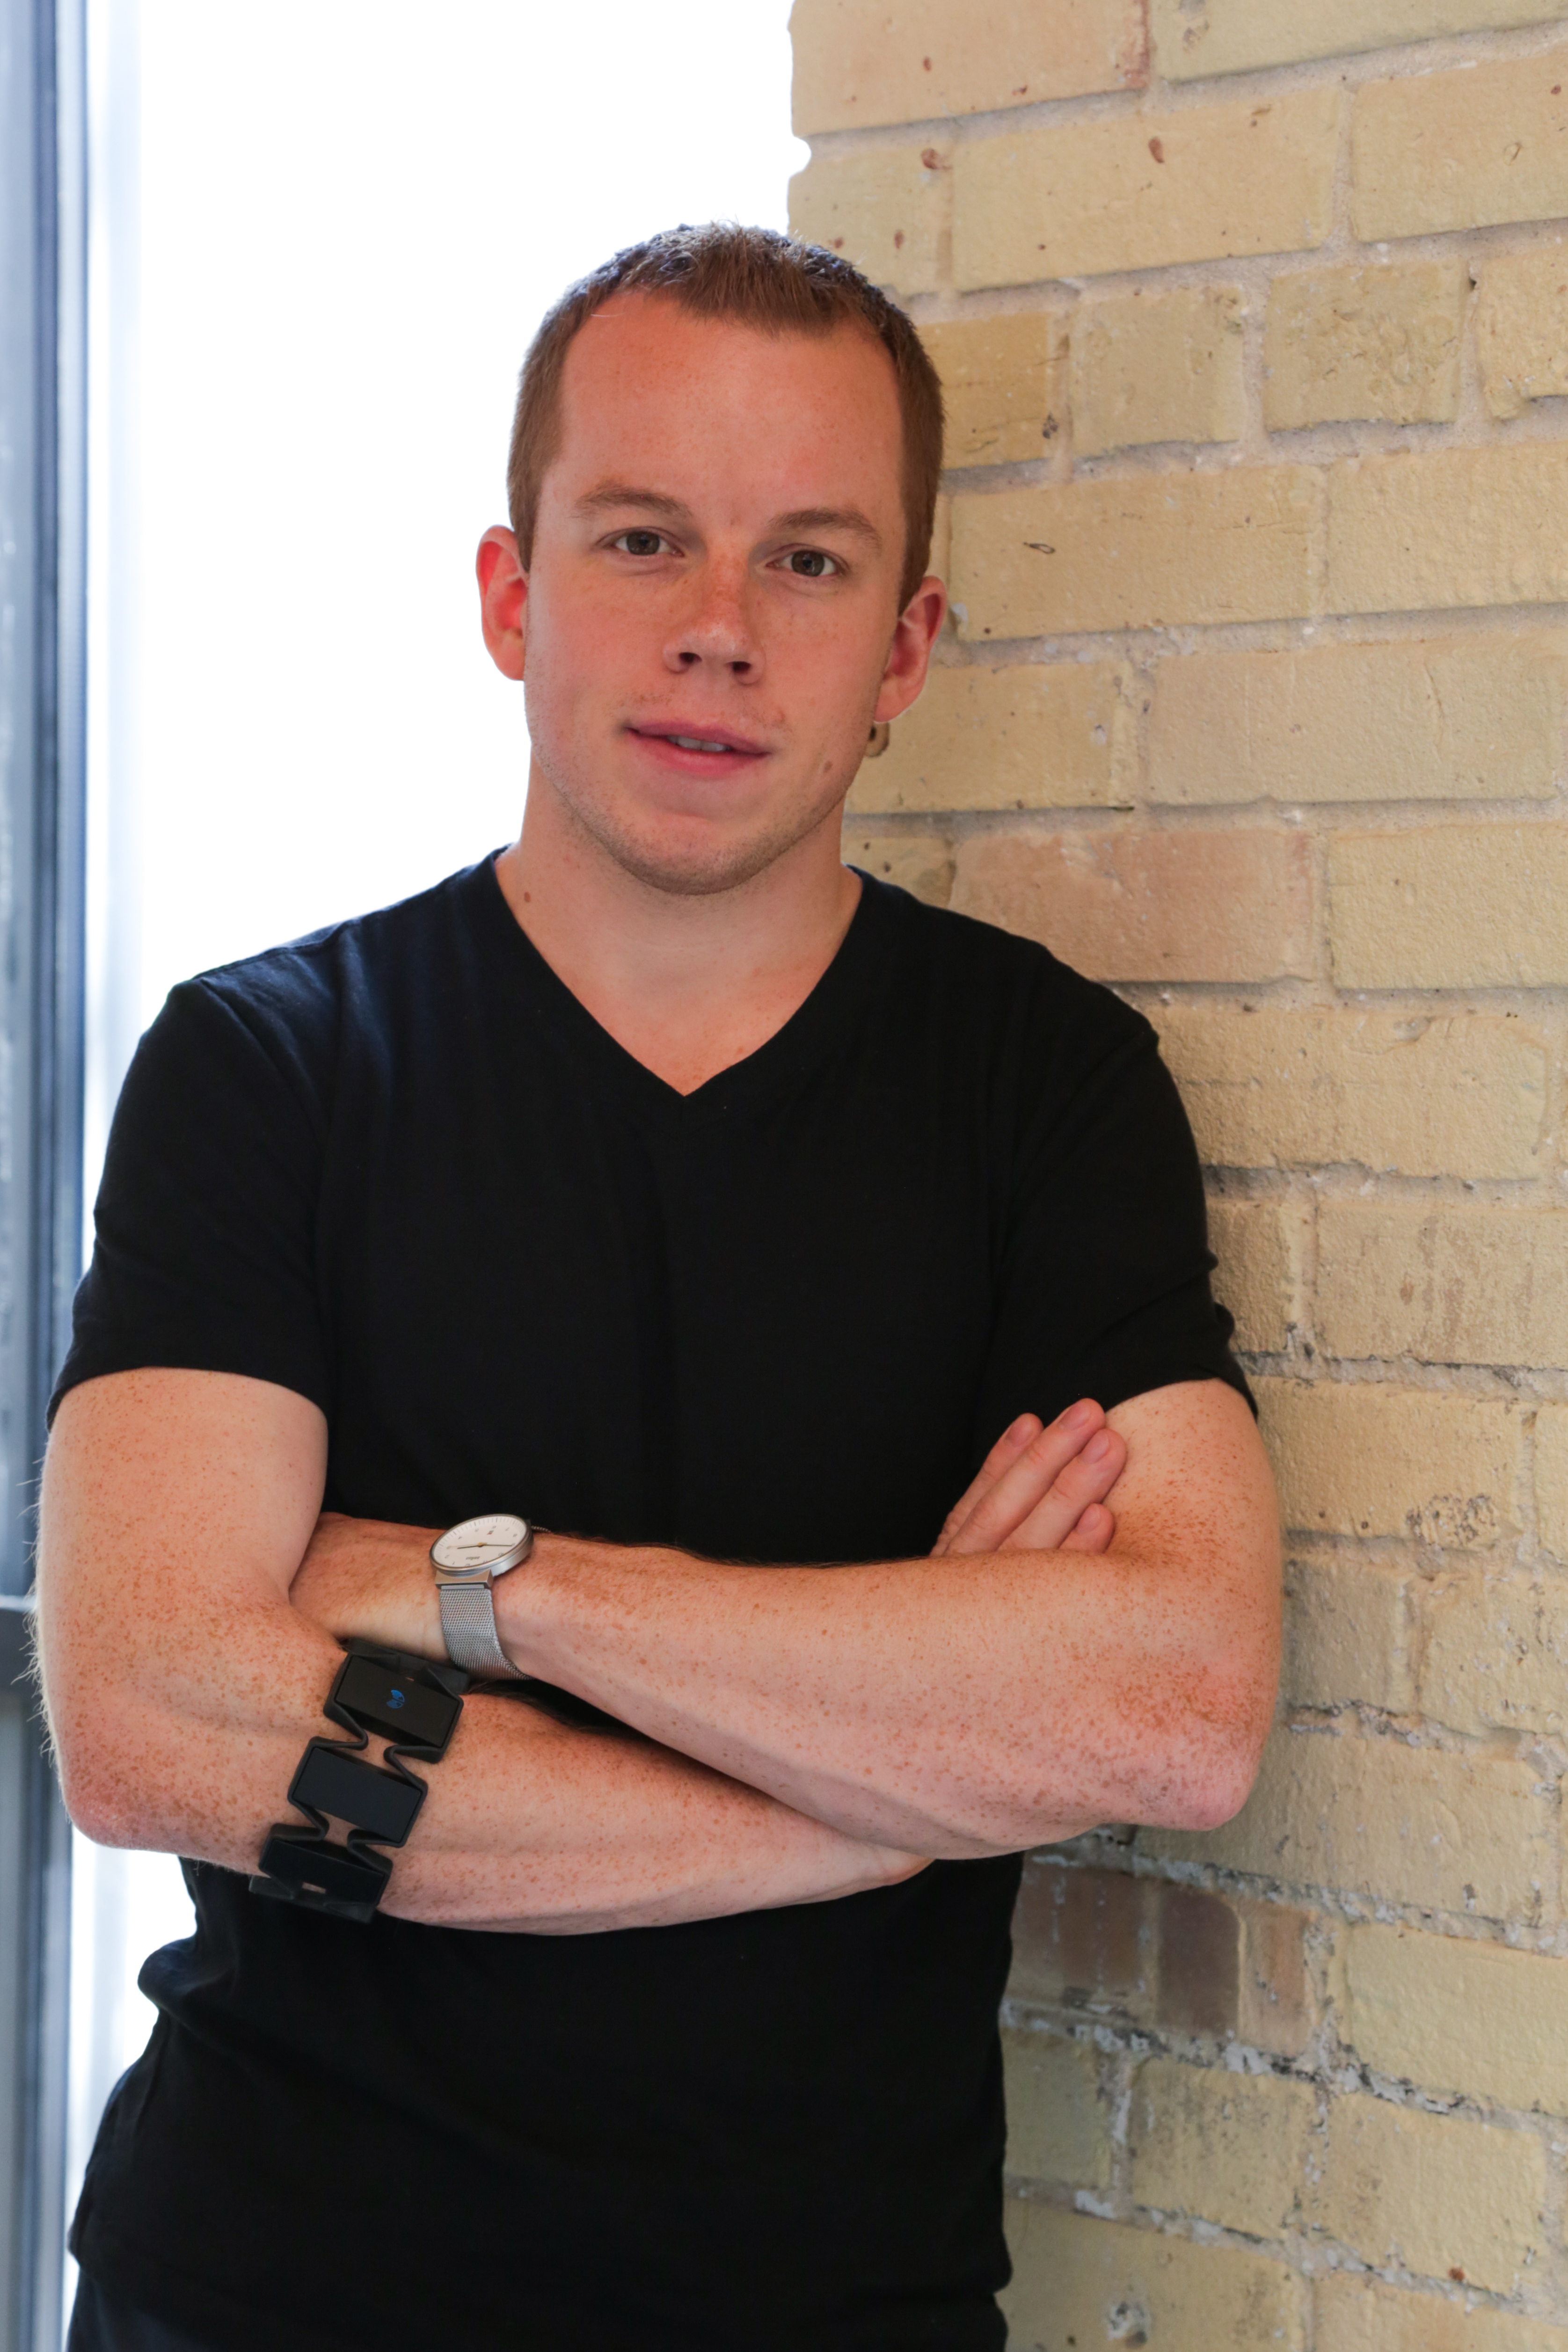 Stephen Lake, cofounder and CEO of Thalmic Labs